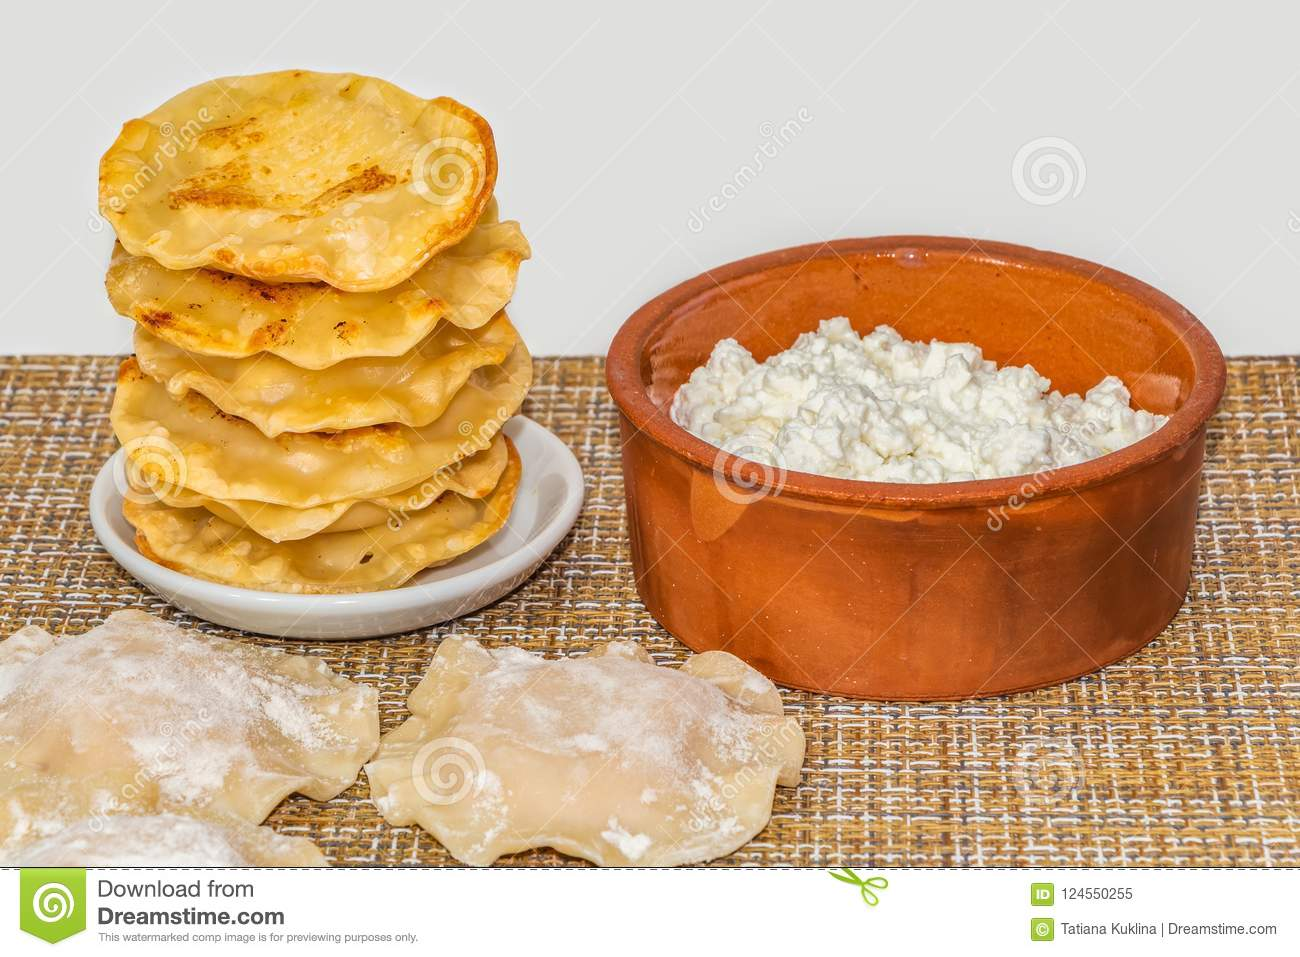 the fried yellow tortillas with cottage cheese lie like a pyramid on